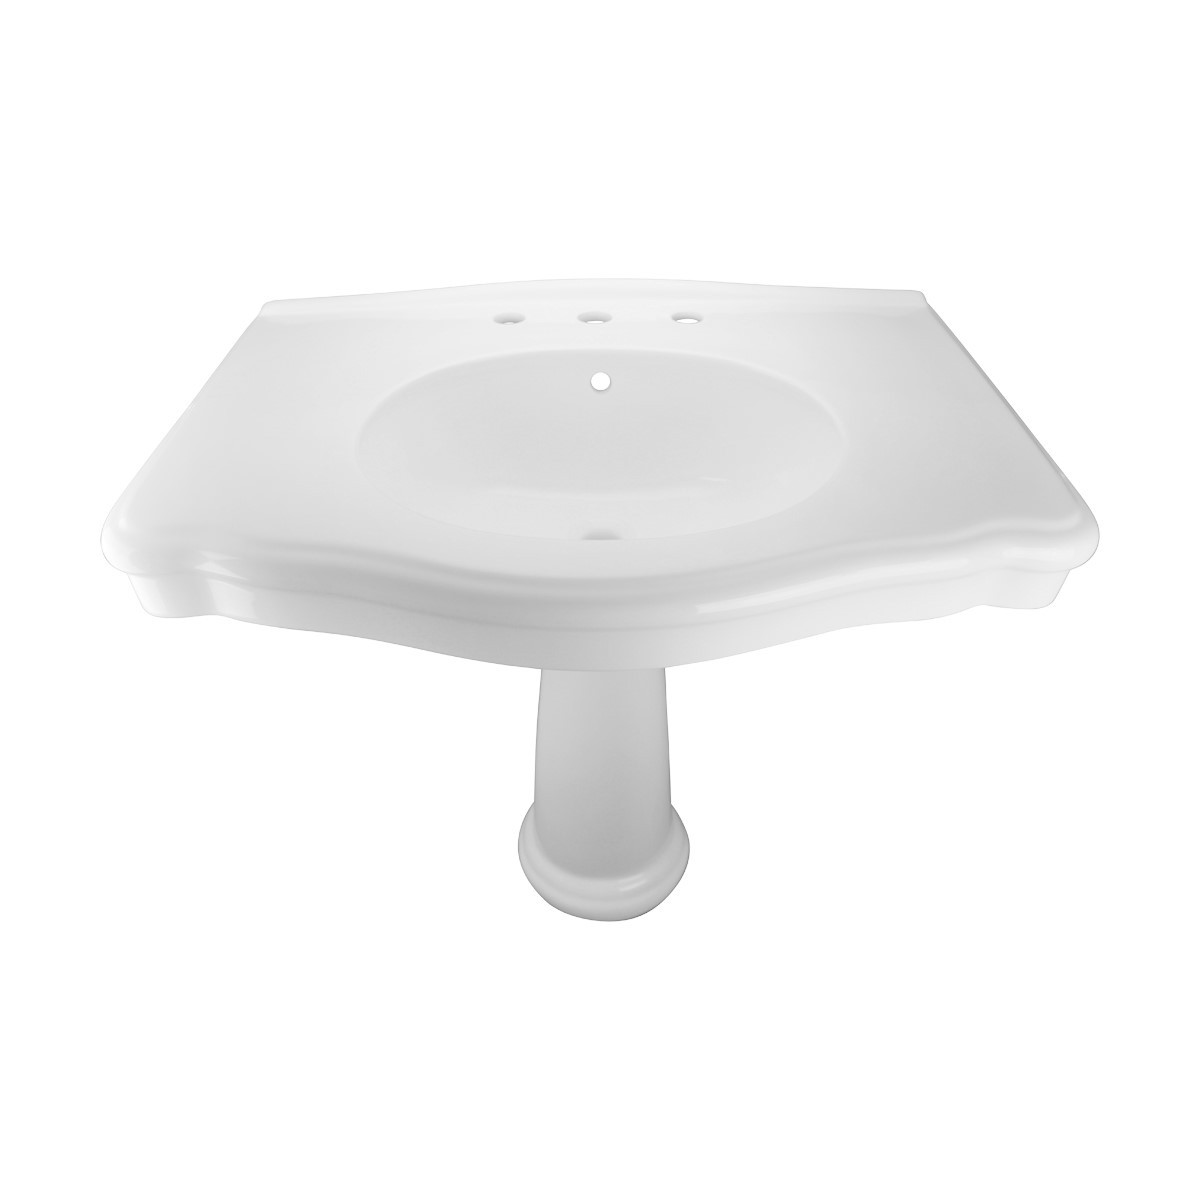 White Pedestal Sink with 8 Widespread Faucet, Drain and PTrap Widespread Pedestal Sink Modern Bathroom Pedestal Sink Classic Bathroom Sinks